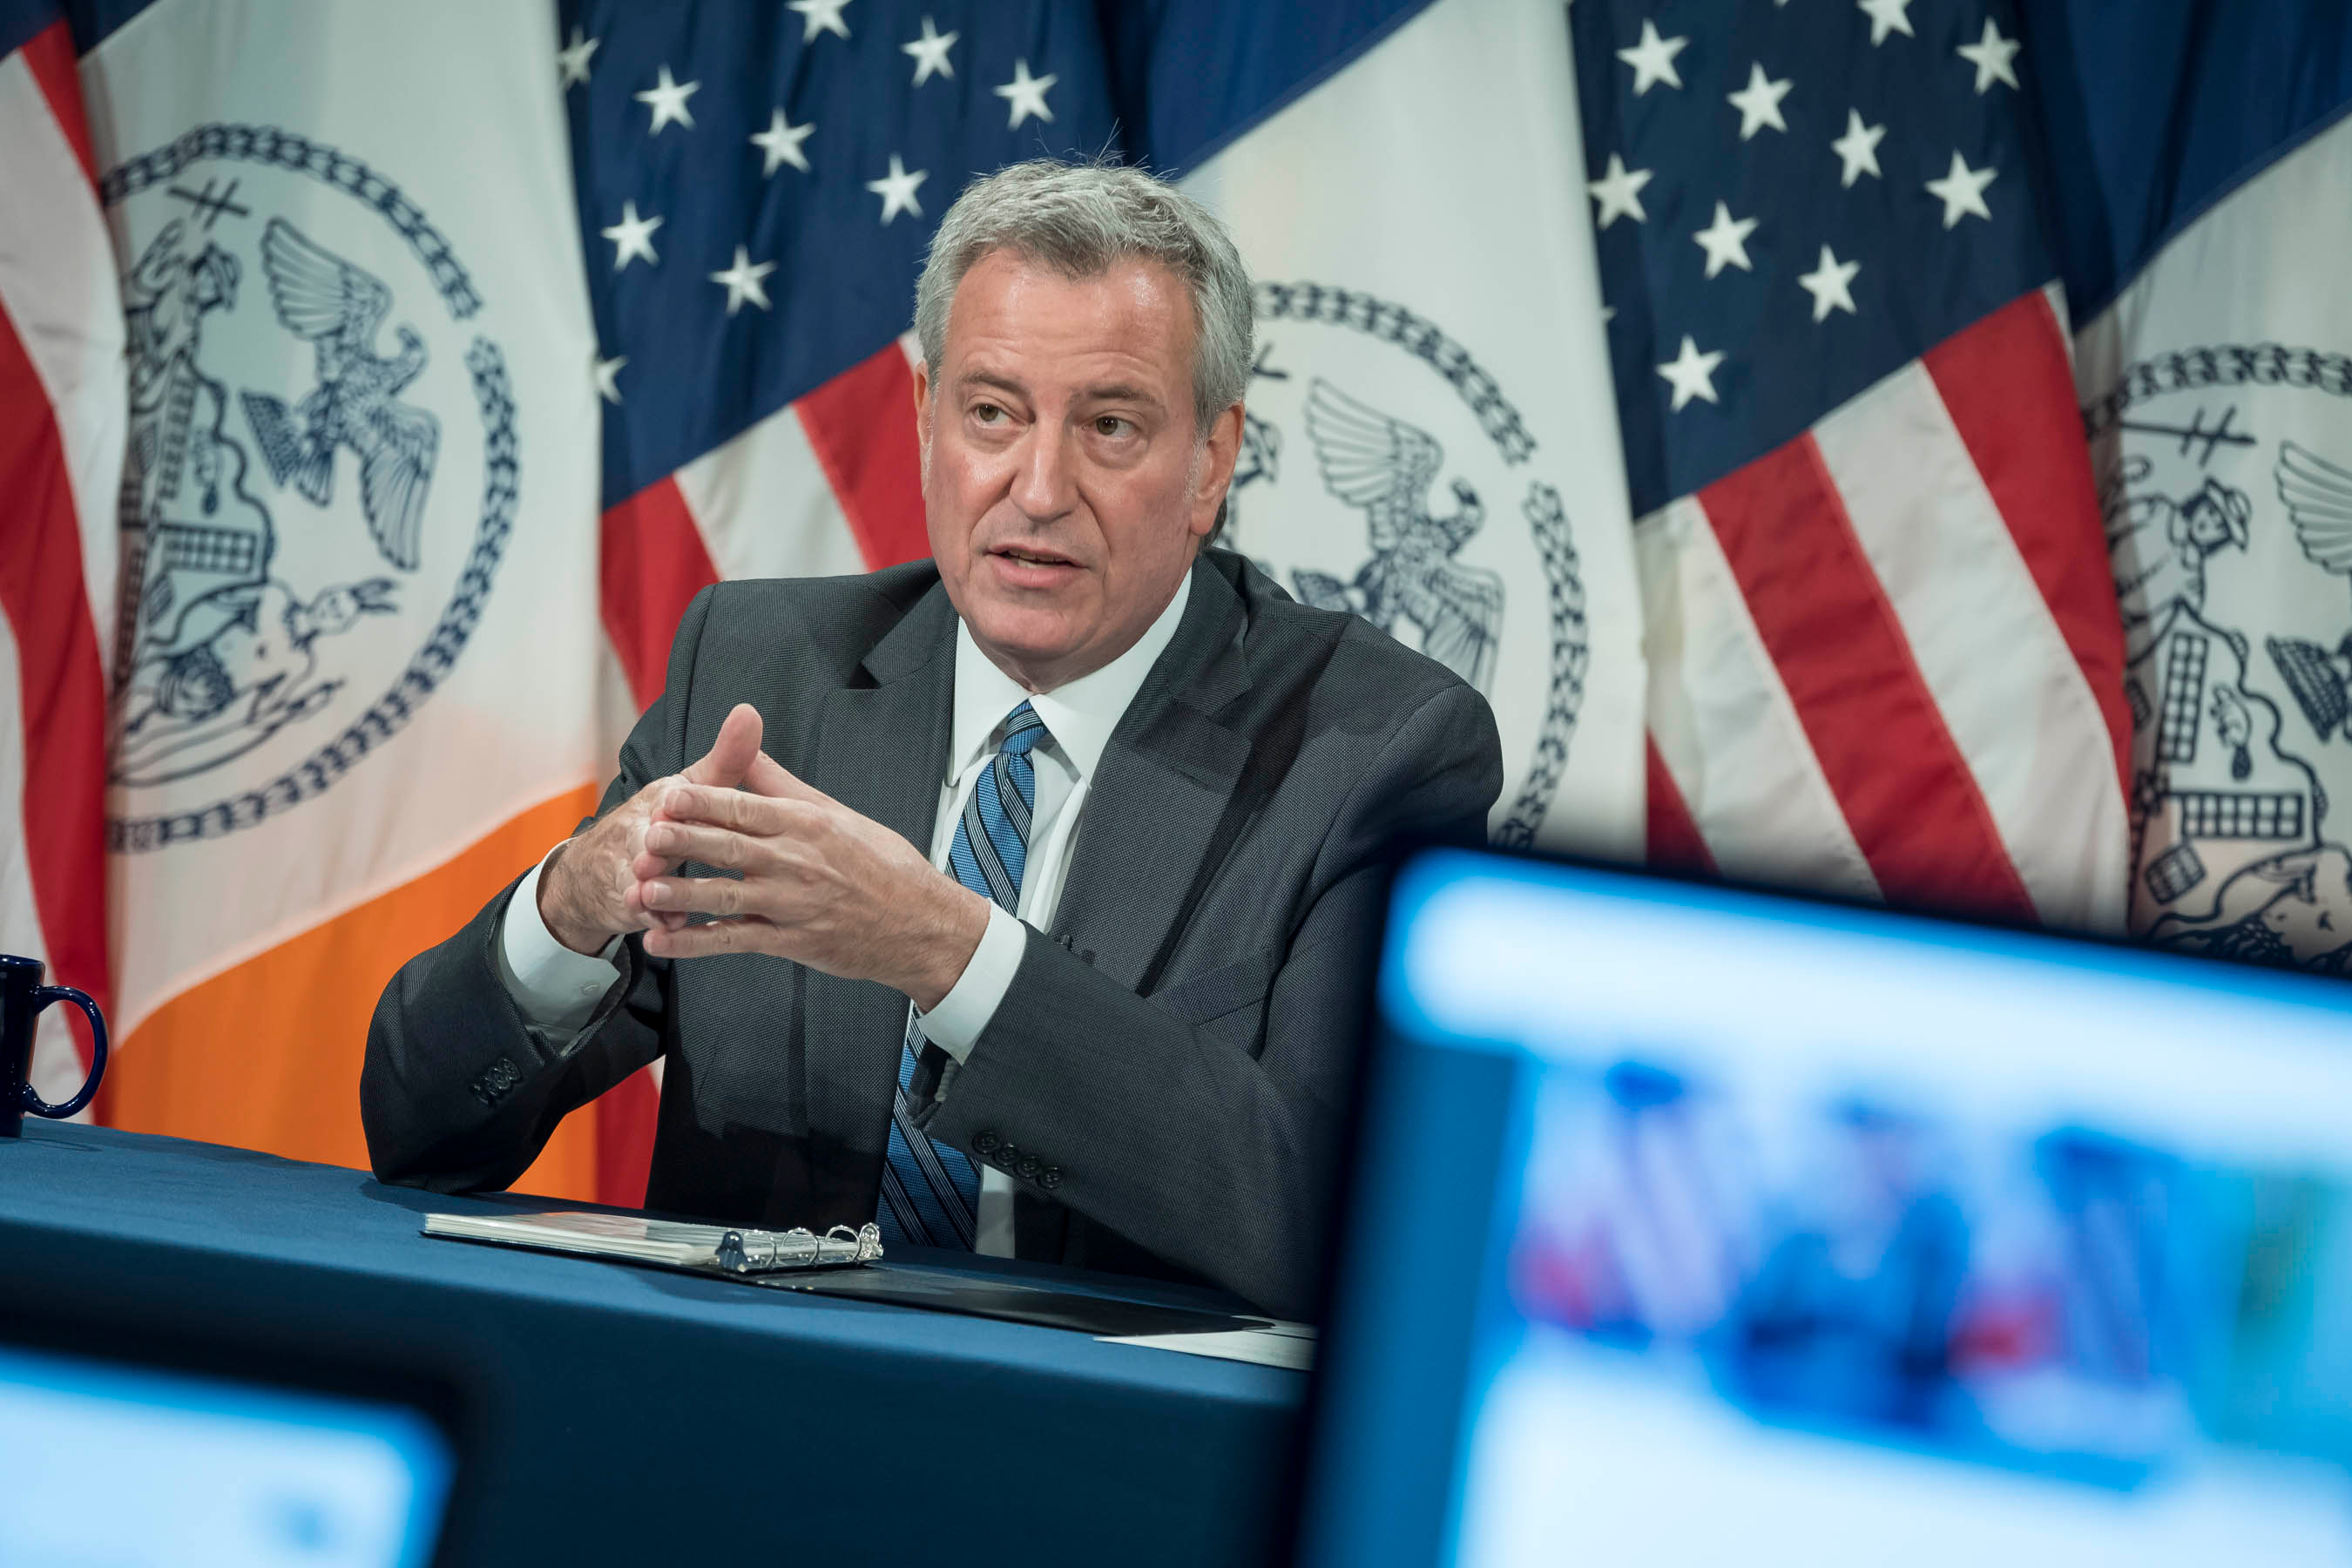 Mayor Bill de Blasio spoke about the 2020 budget during a City Hall press conference, June 30, 2020.